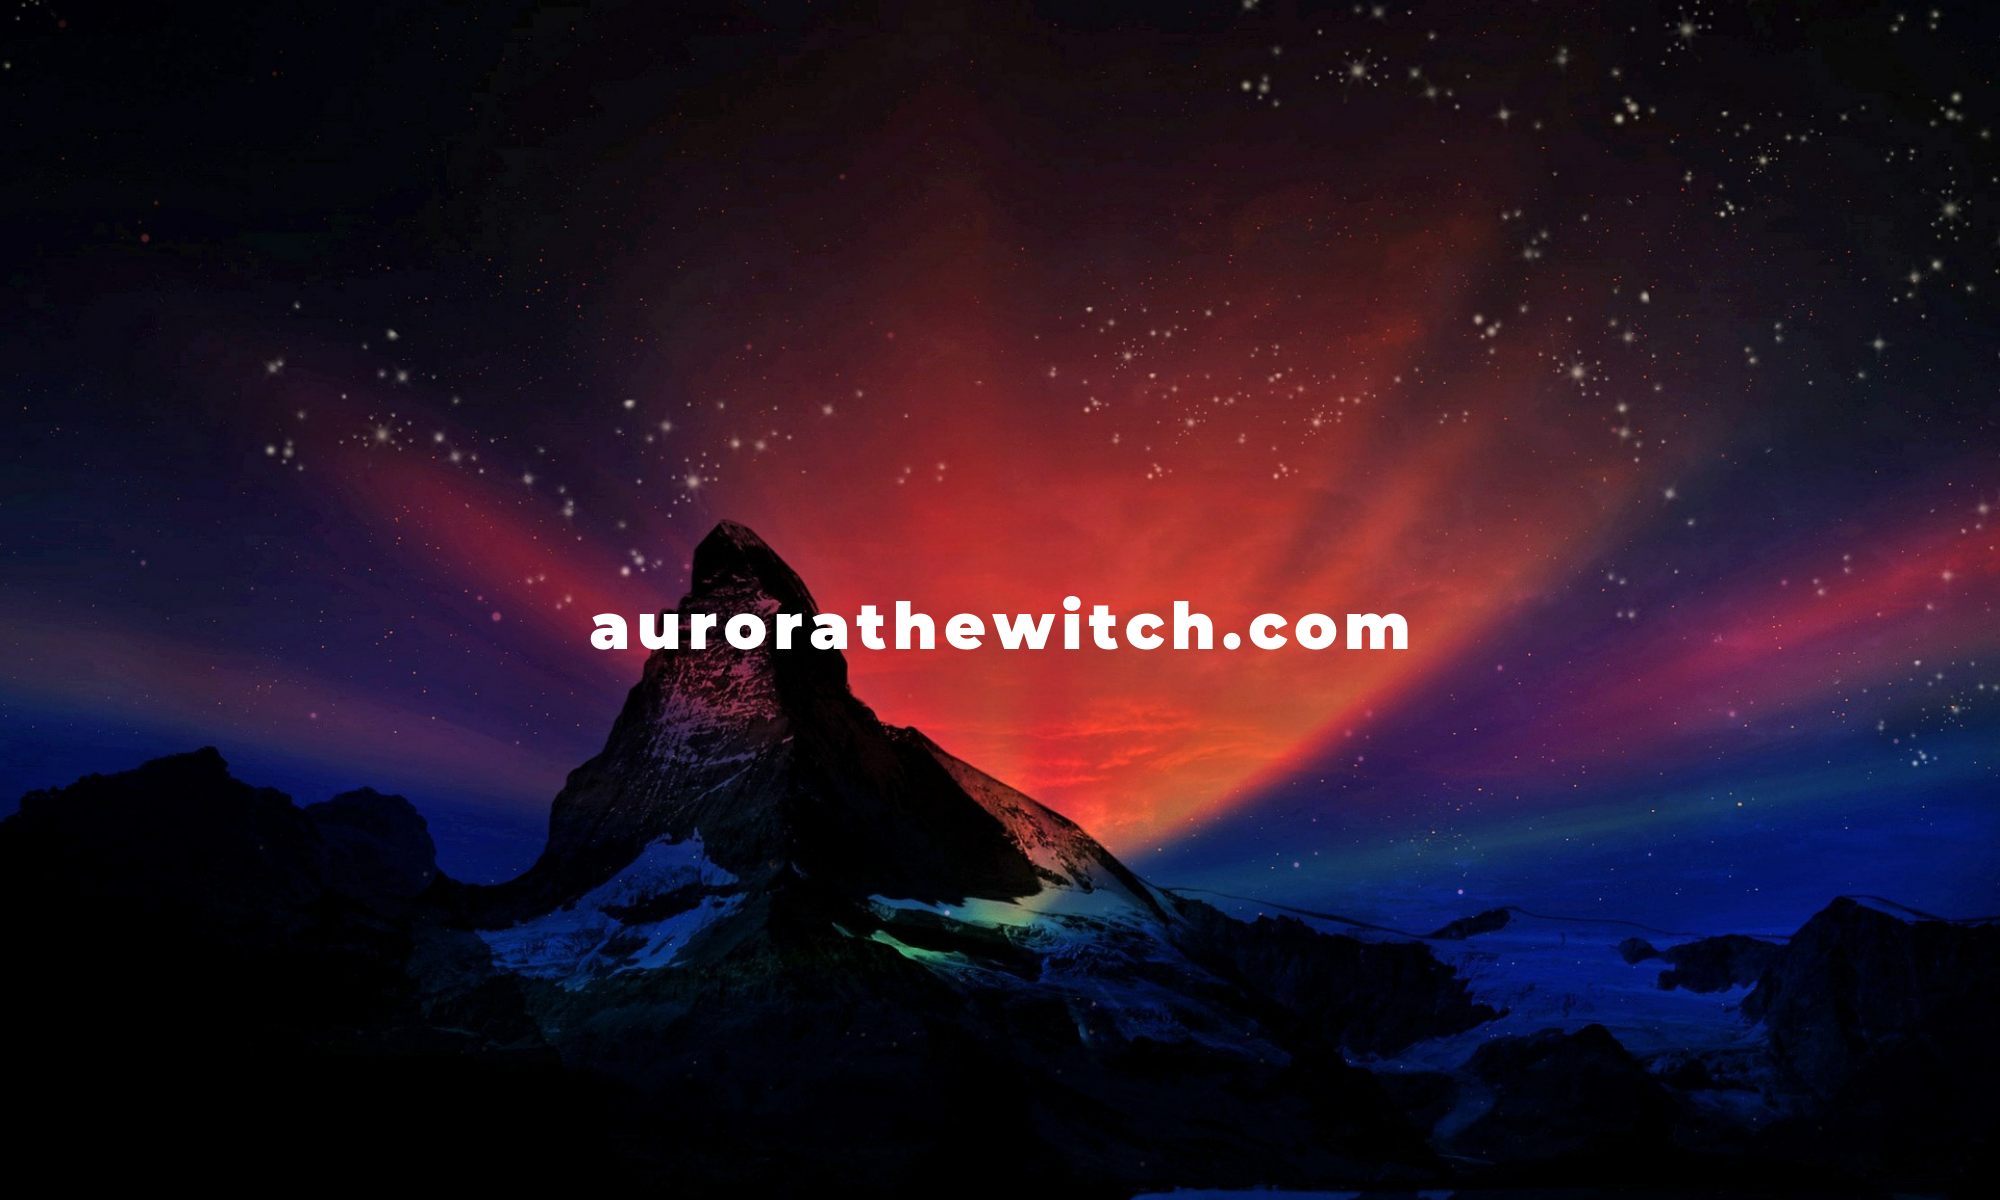 aurora the witch